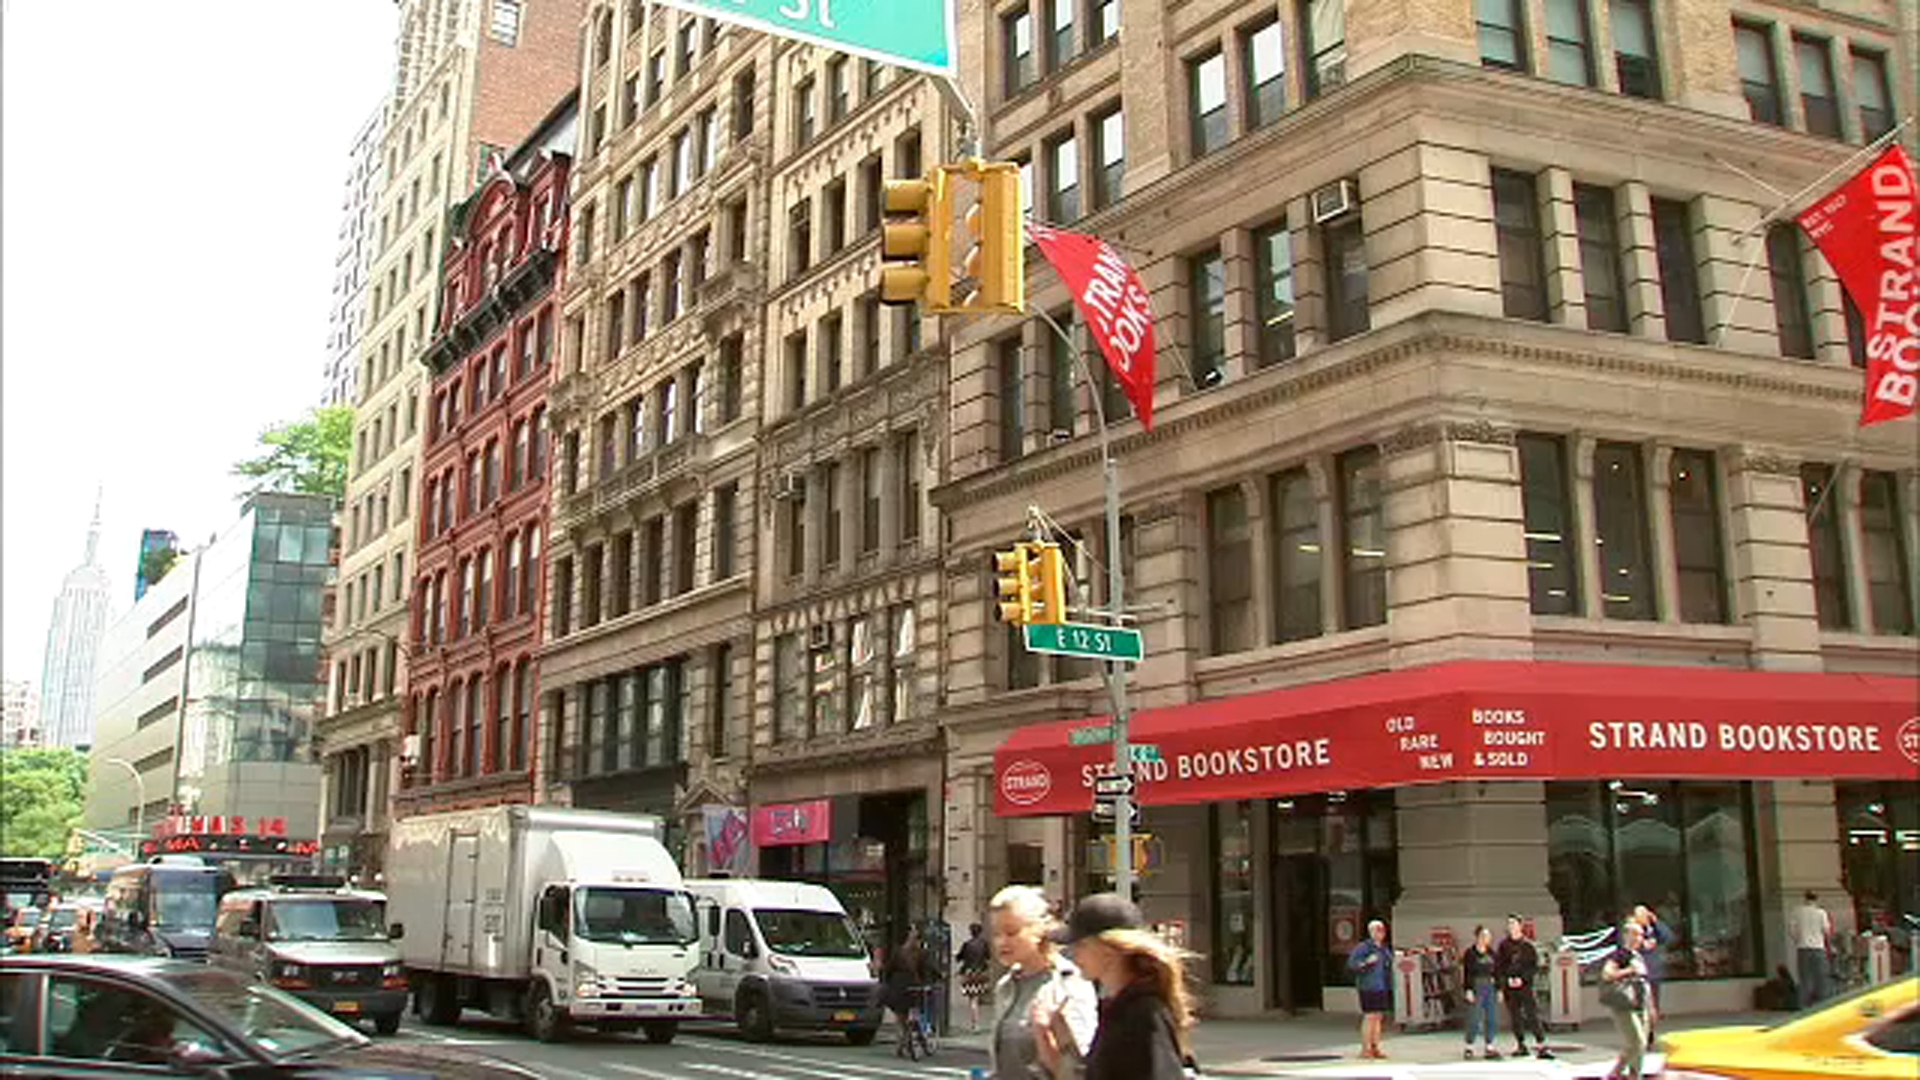 Coronavirus New York City: Strand Bookstore closed, lays off most of staff after coronavirus crisis cripples business - ABC7 New York